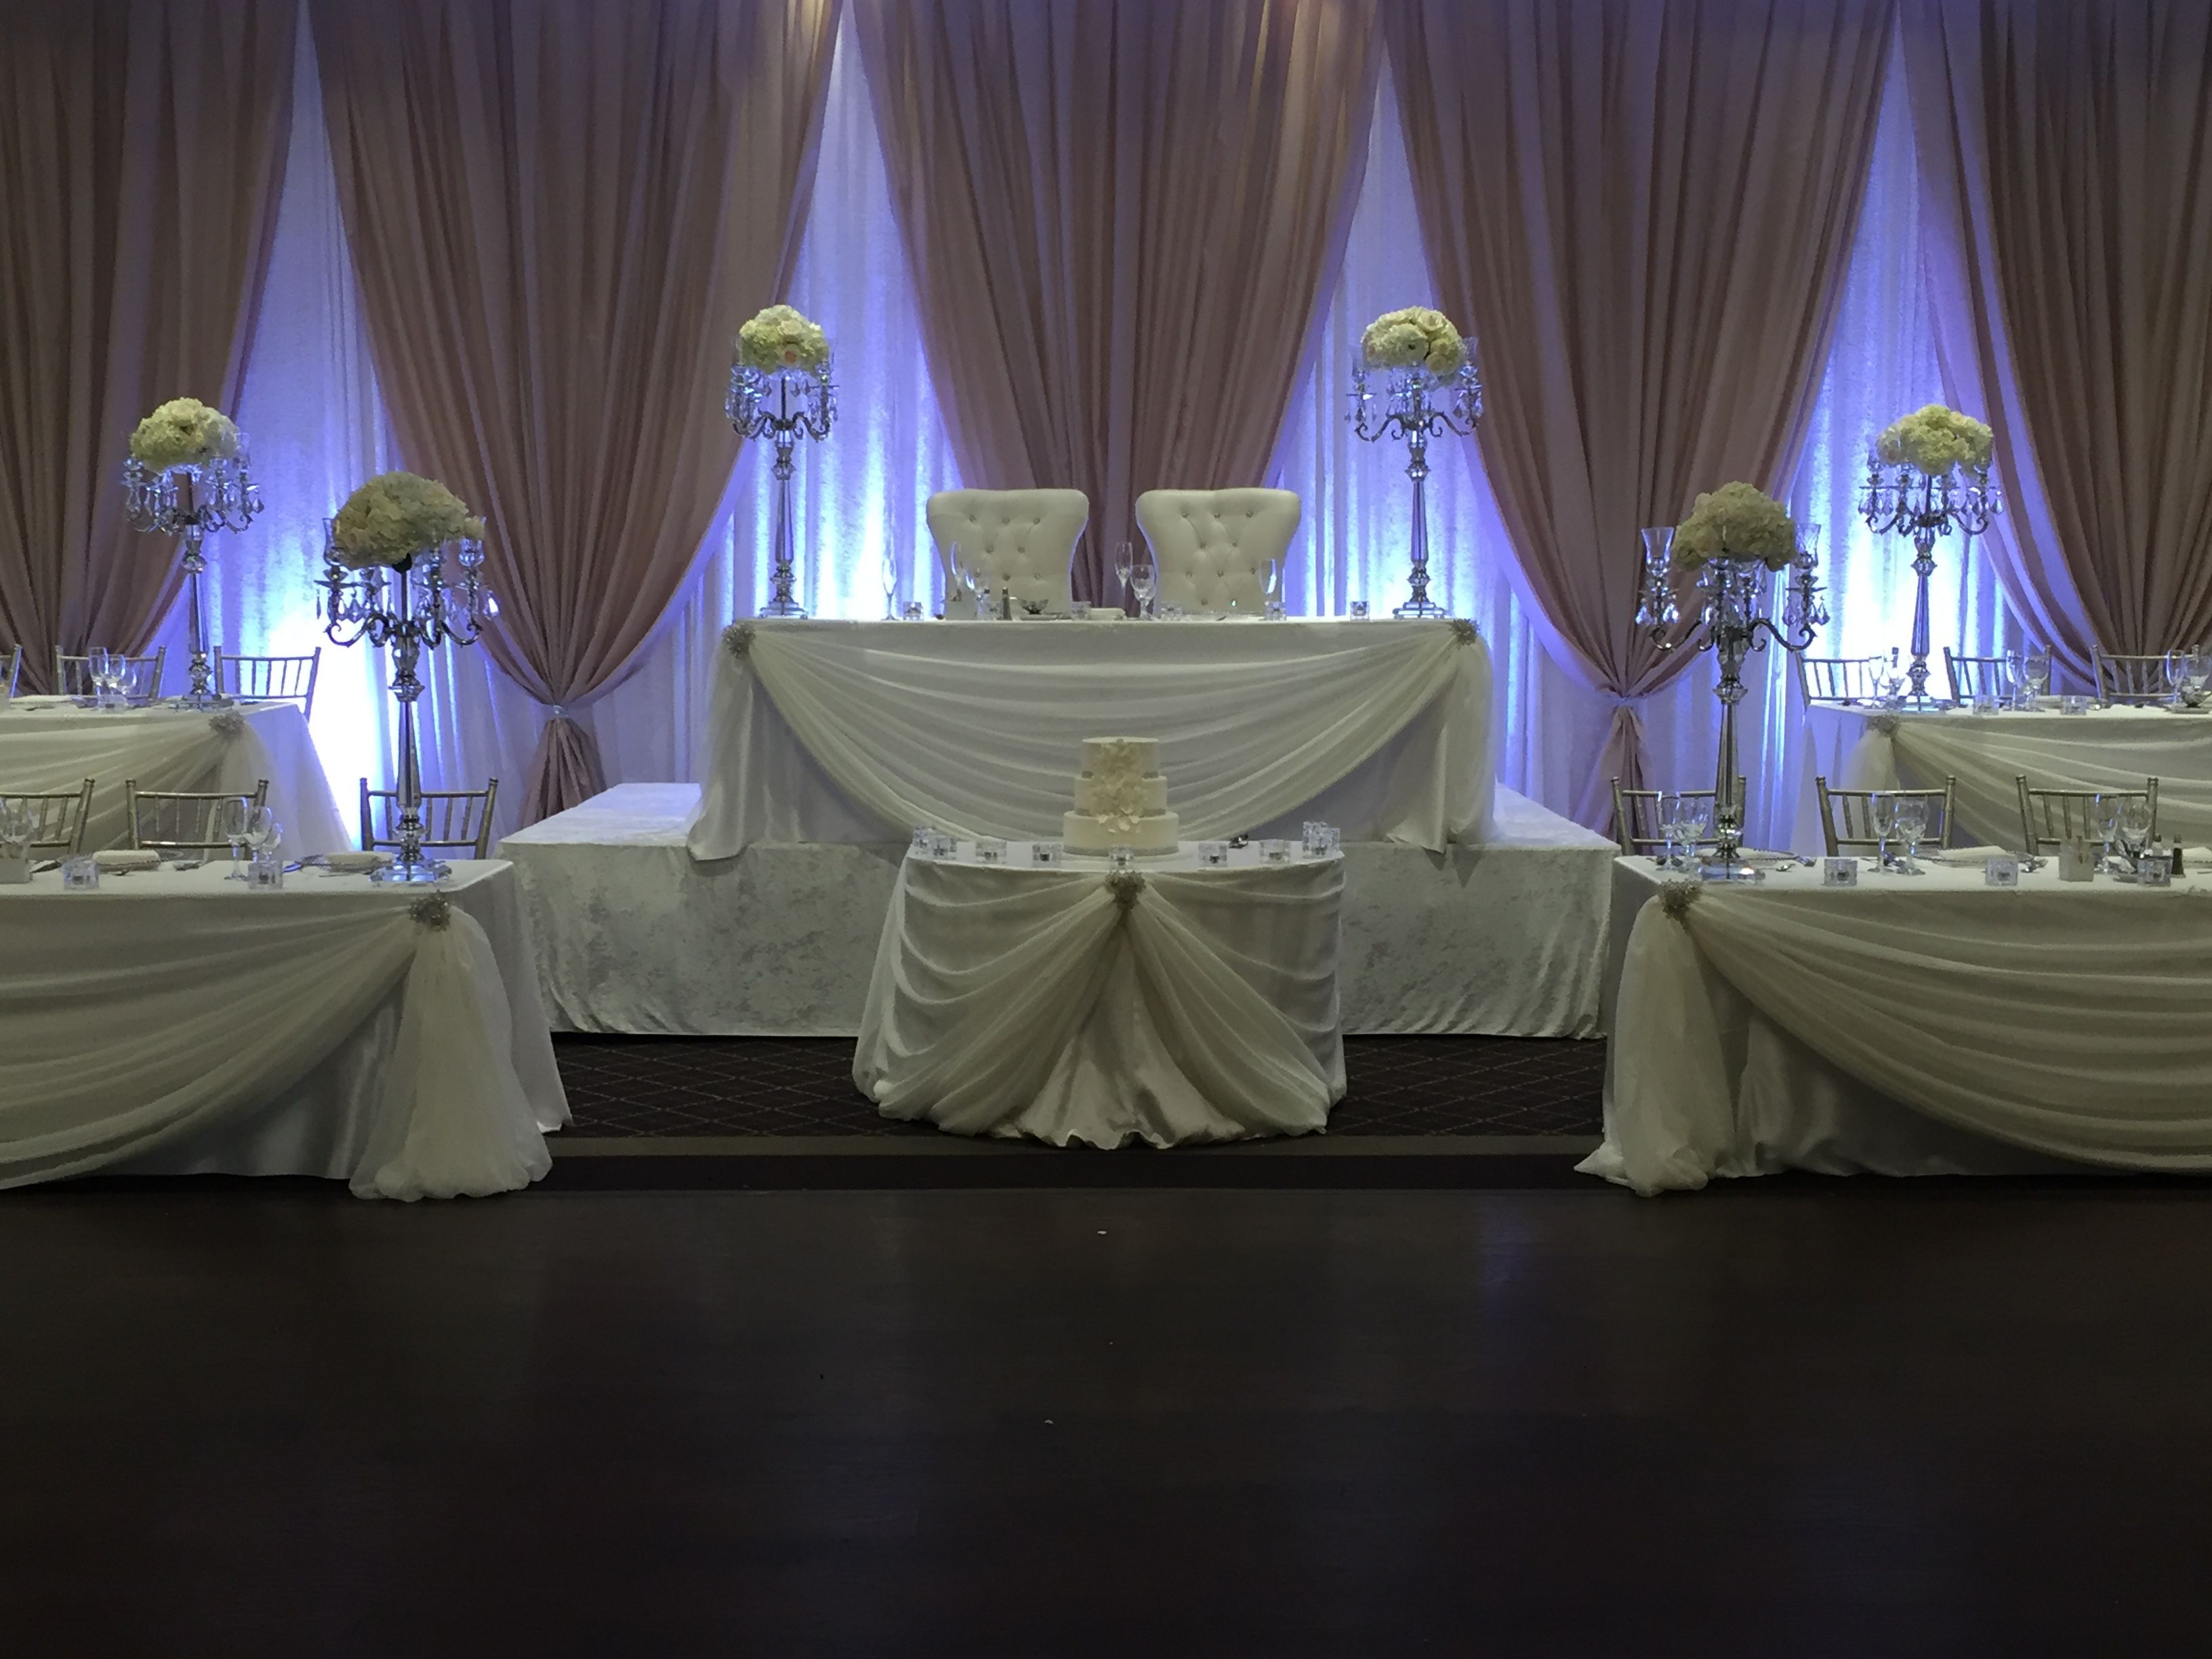 Champagne And Ivory Backdrop 5 Tier Head Table Made For Large